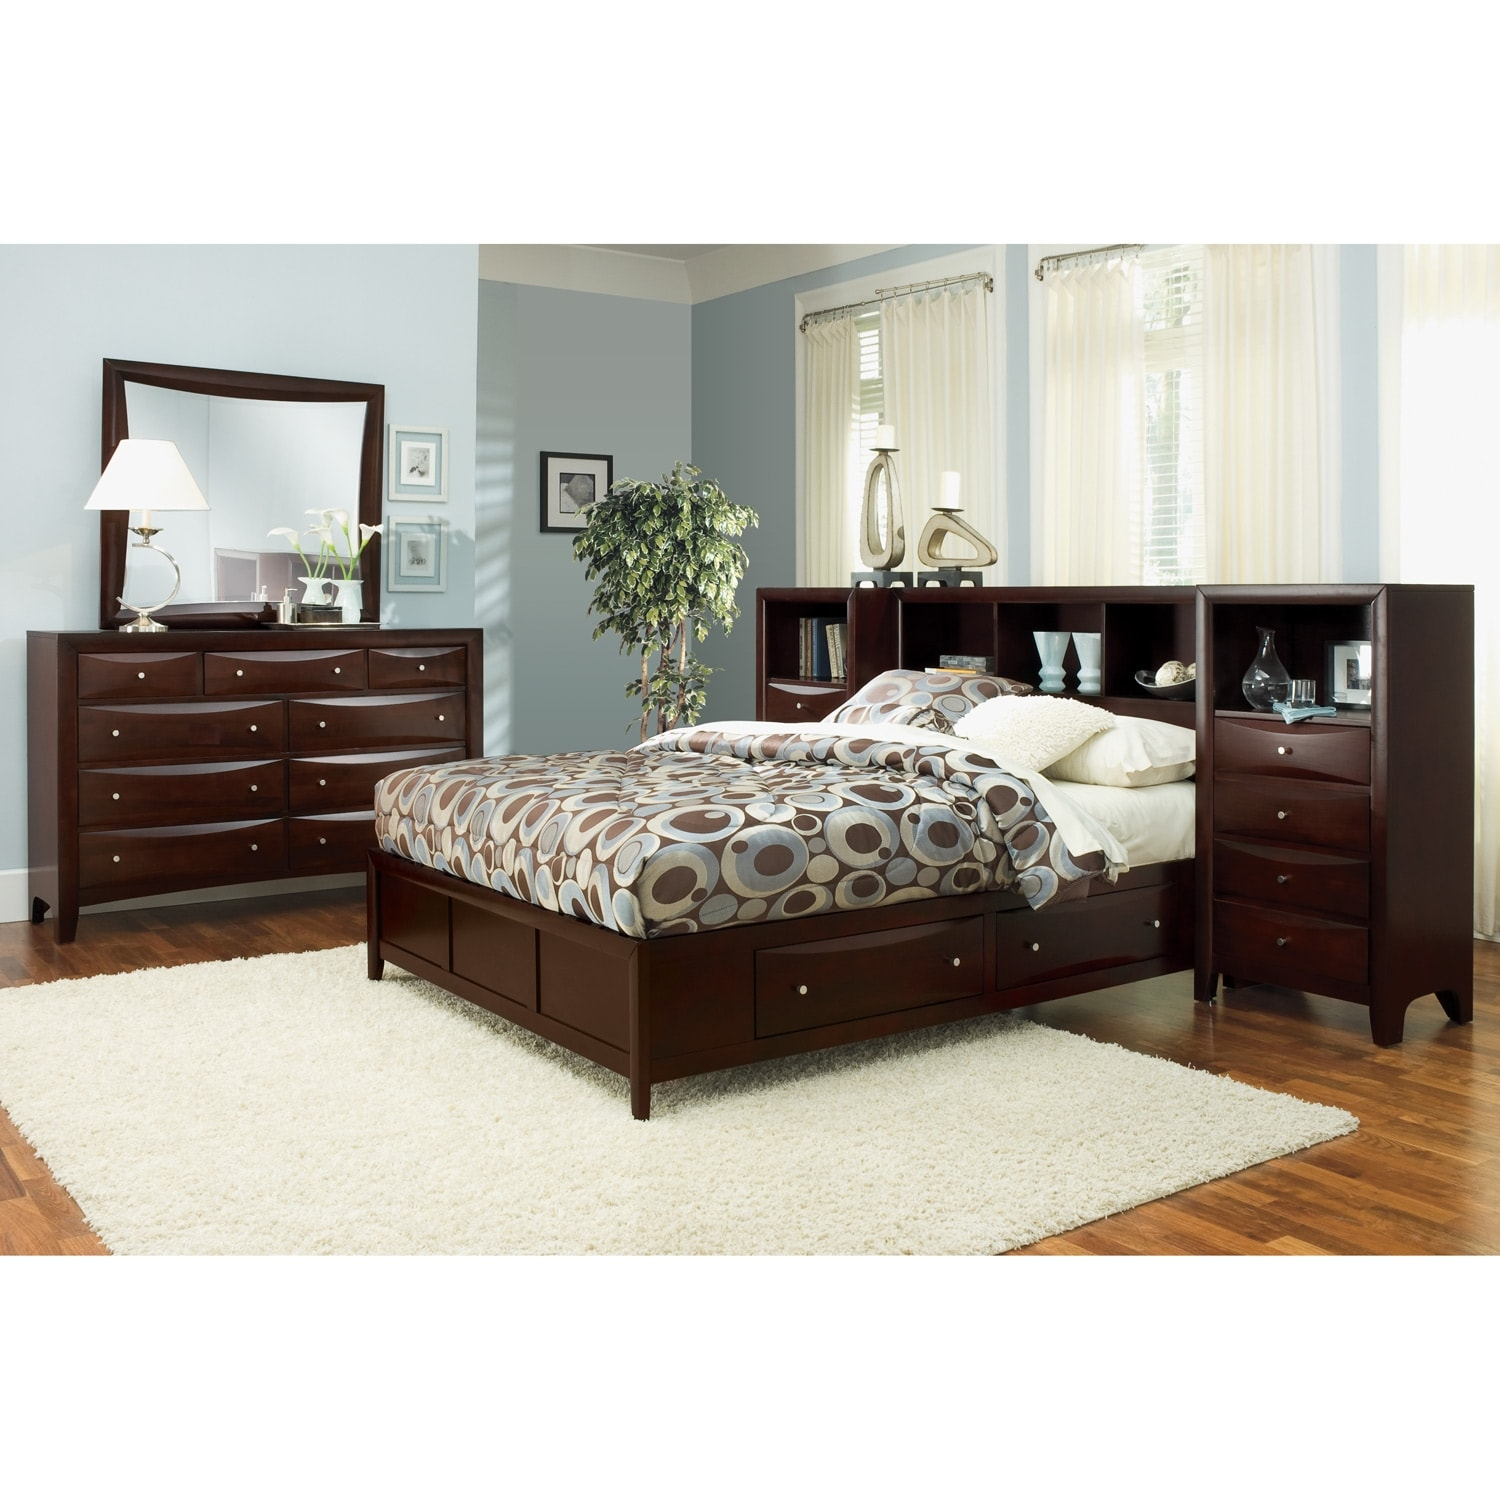 Kensington bedroom queen wall bed with piers for Looking for bedroom furniture